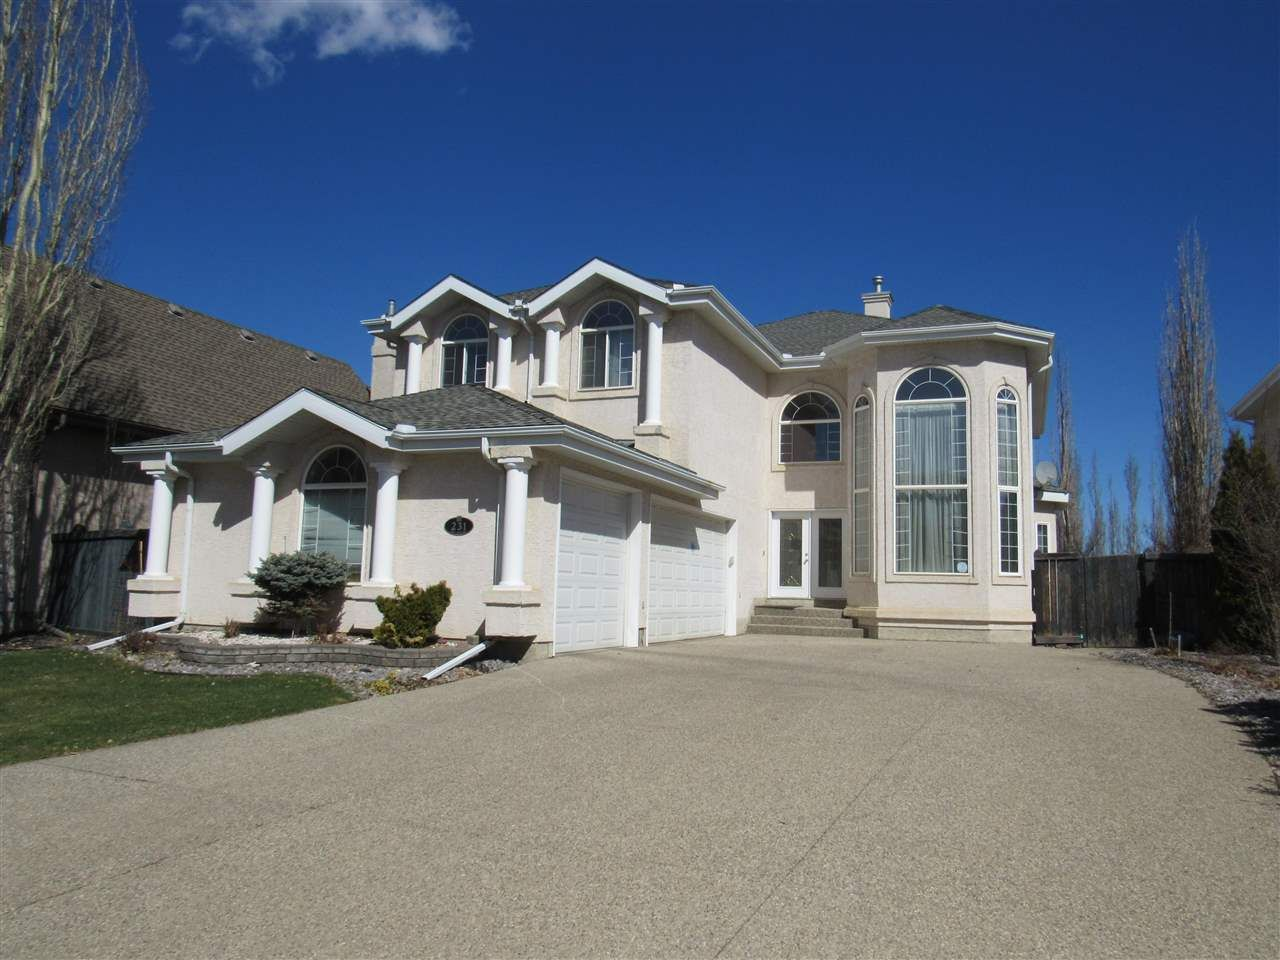 Main Photo: 231 TORY Crescent in Edmonton: Zone 14 House for sale : MLS®# E4242192